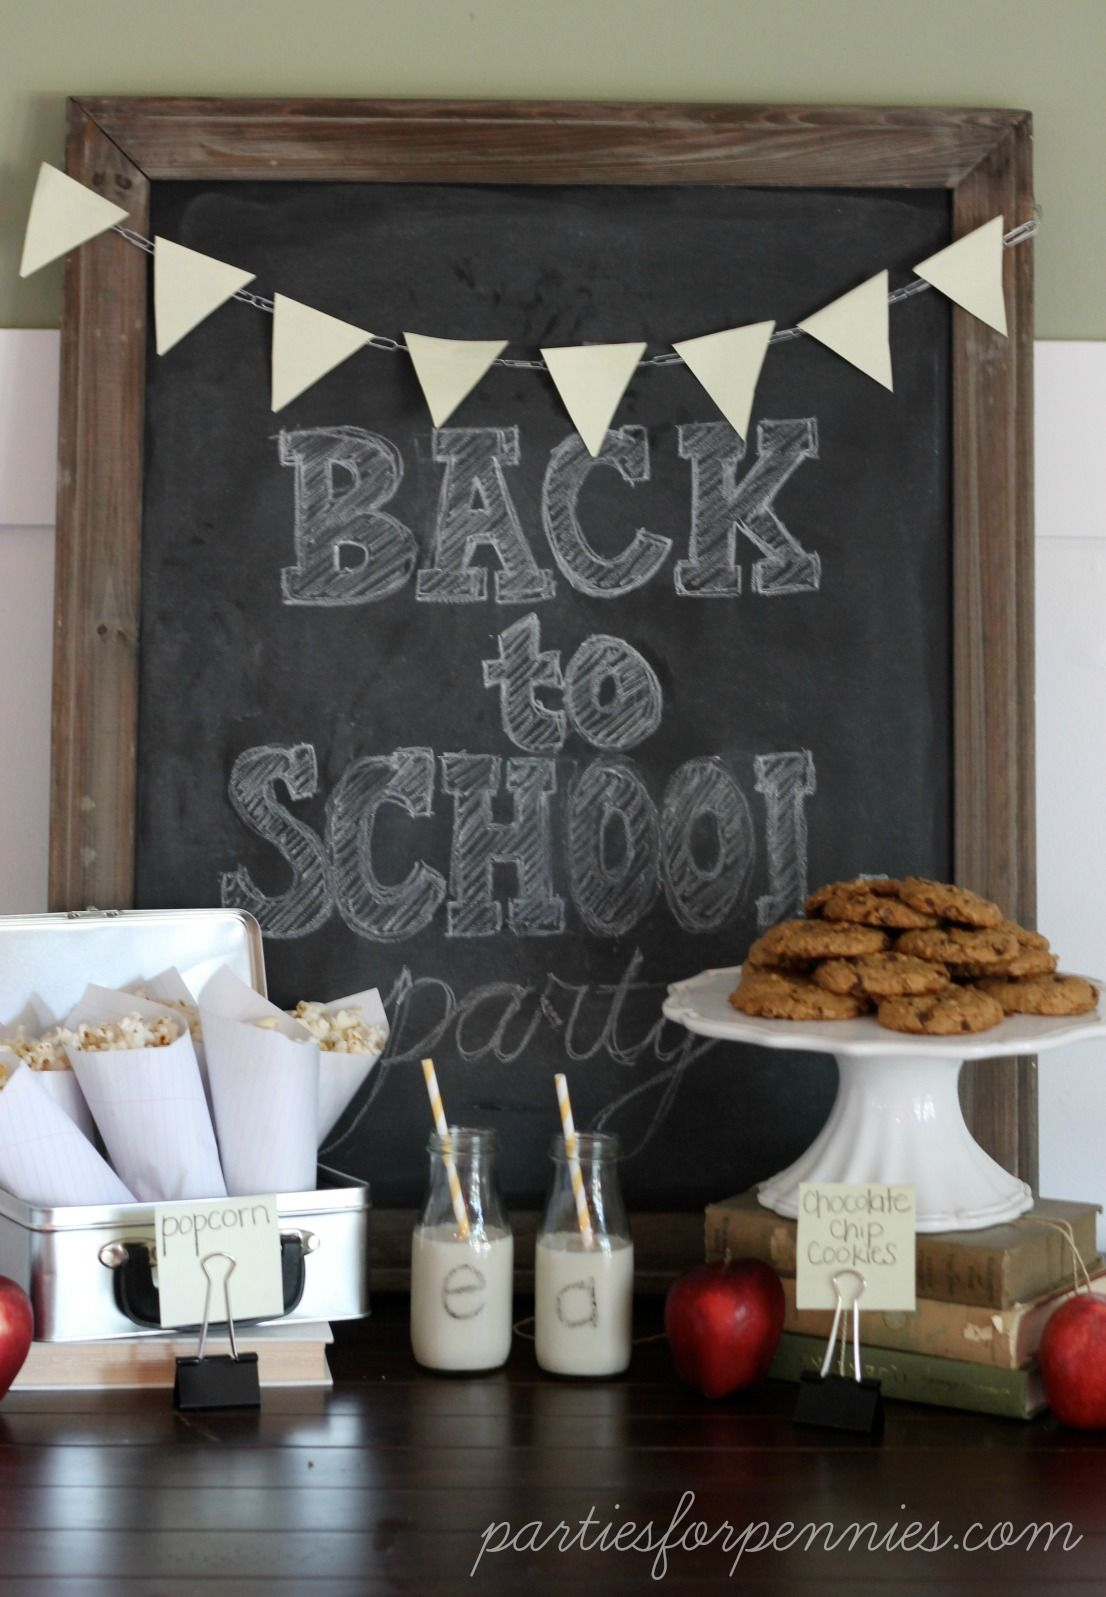 Have you checked out the Back-to-School Party Ideas and entered to the win the $60 Target gift card? http://www.allkindsofthingsblog.com/2014/08/back-to-school-parties.html